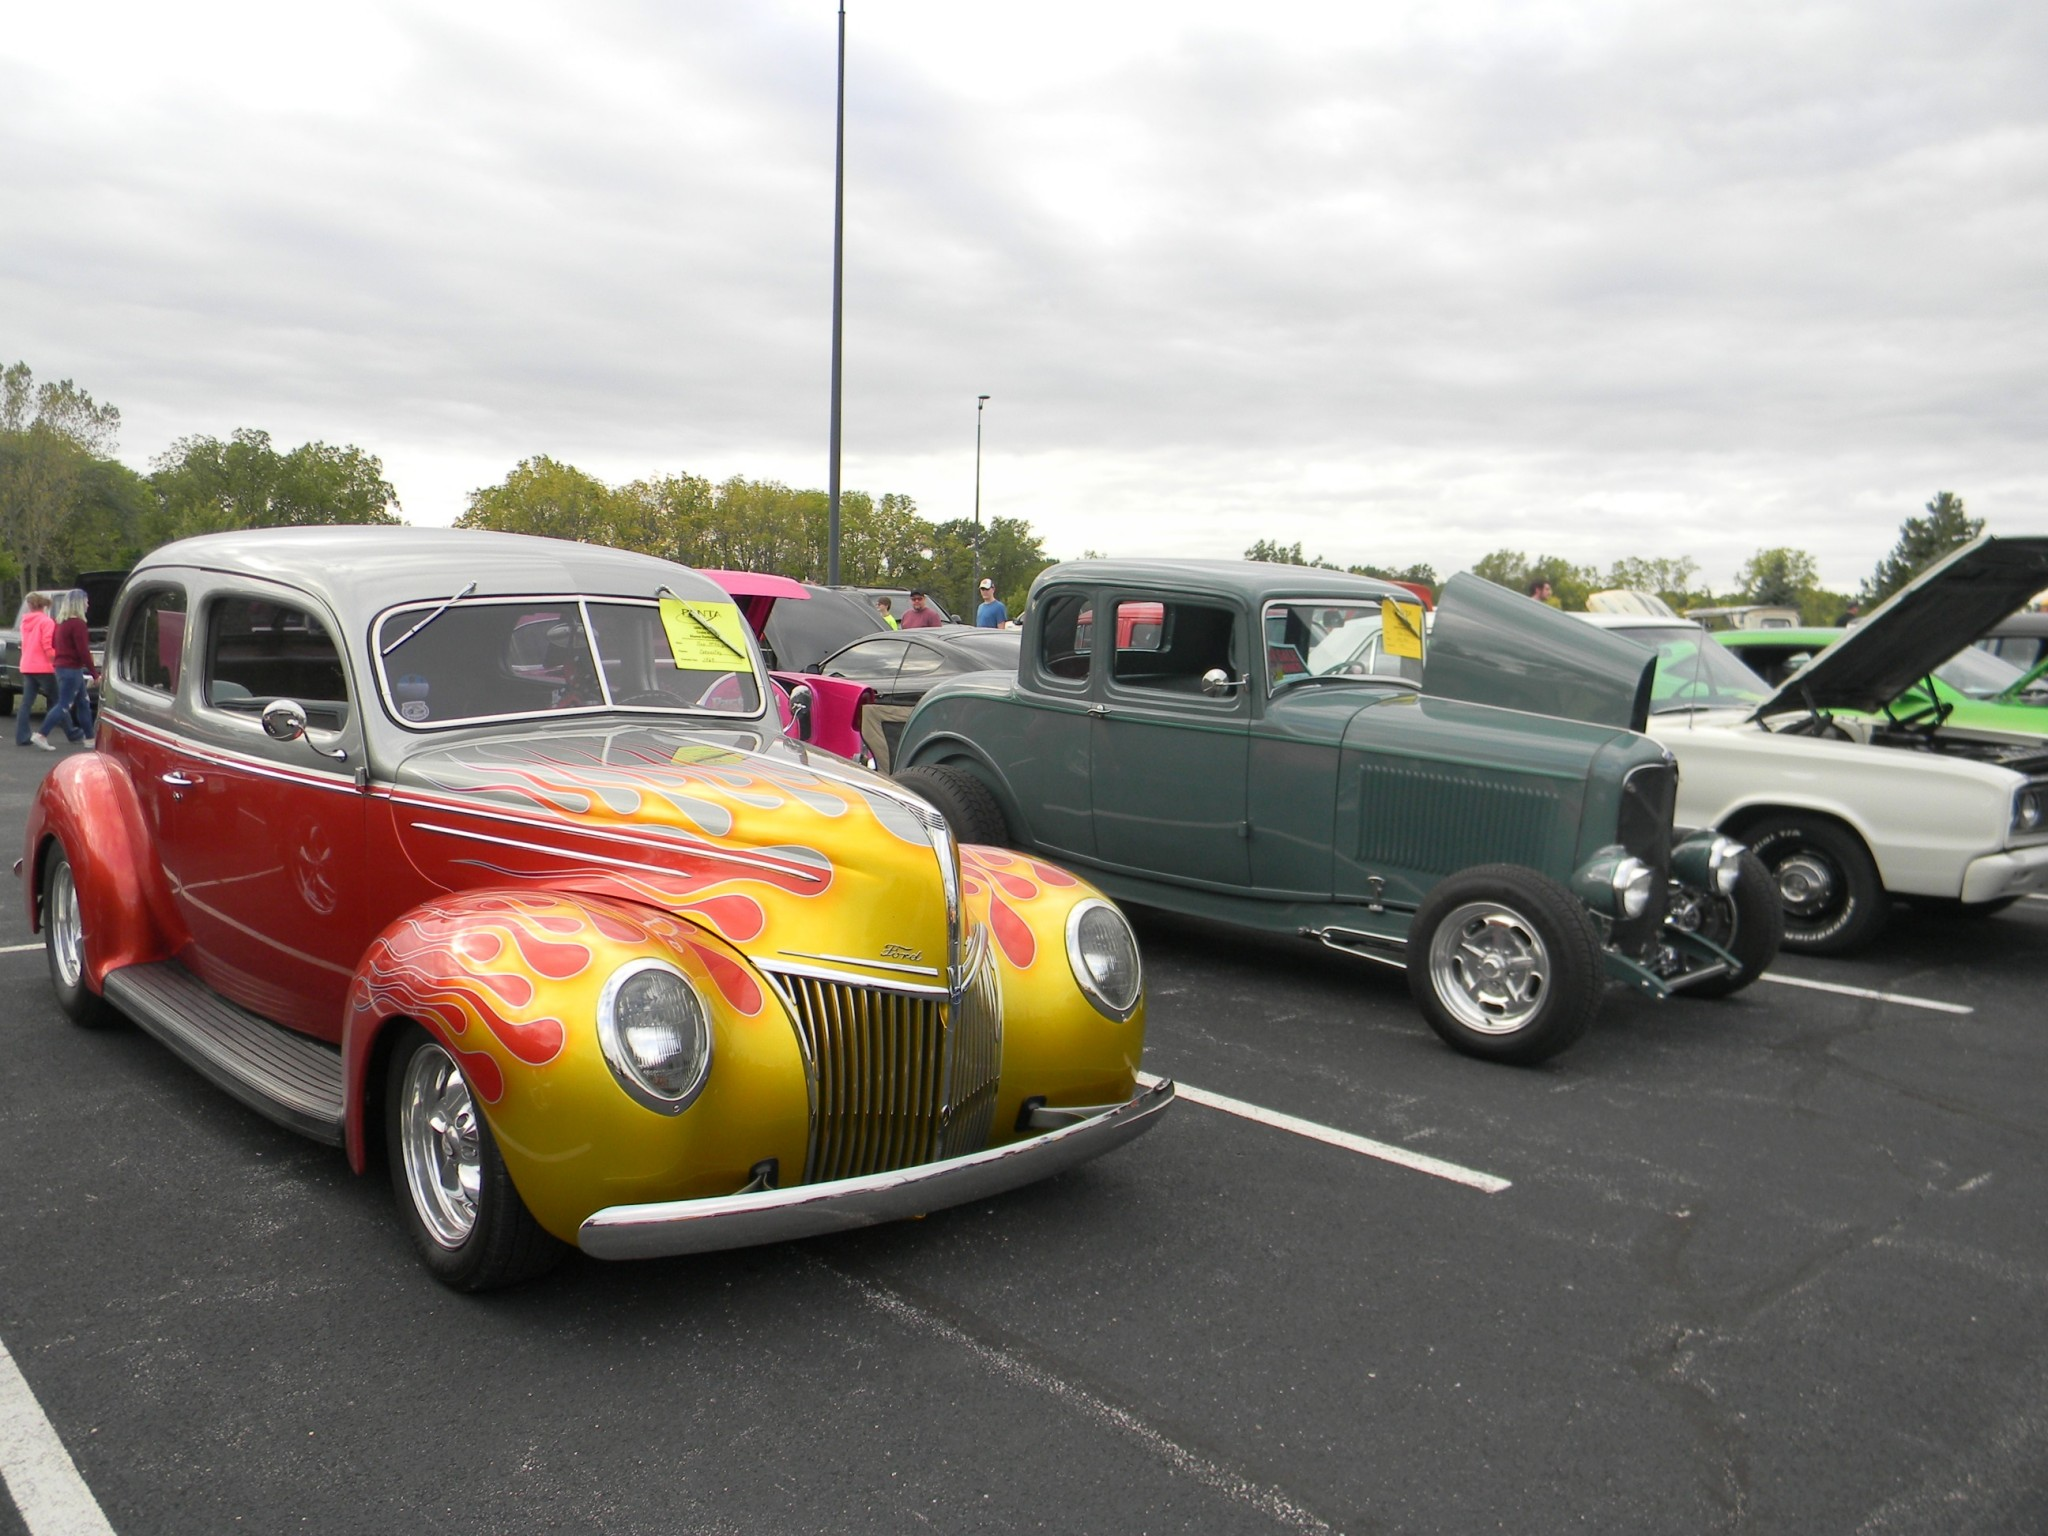 Students in the Penta Career Center Transportation programs will host the 10th Annual Cruise-In Car Show Sept. 29 on the school campus. The event will include music, kids' activities, prizes and food trucks. (Submitted photo)